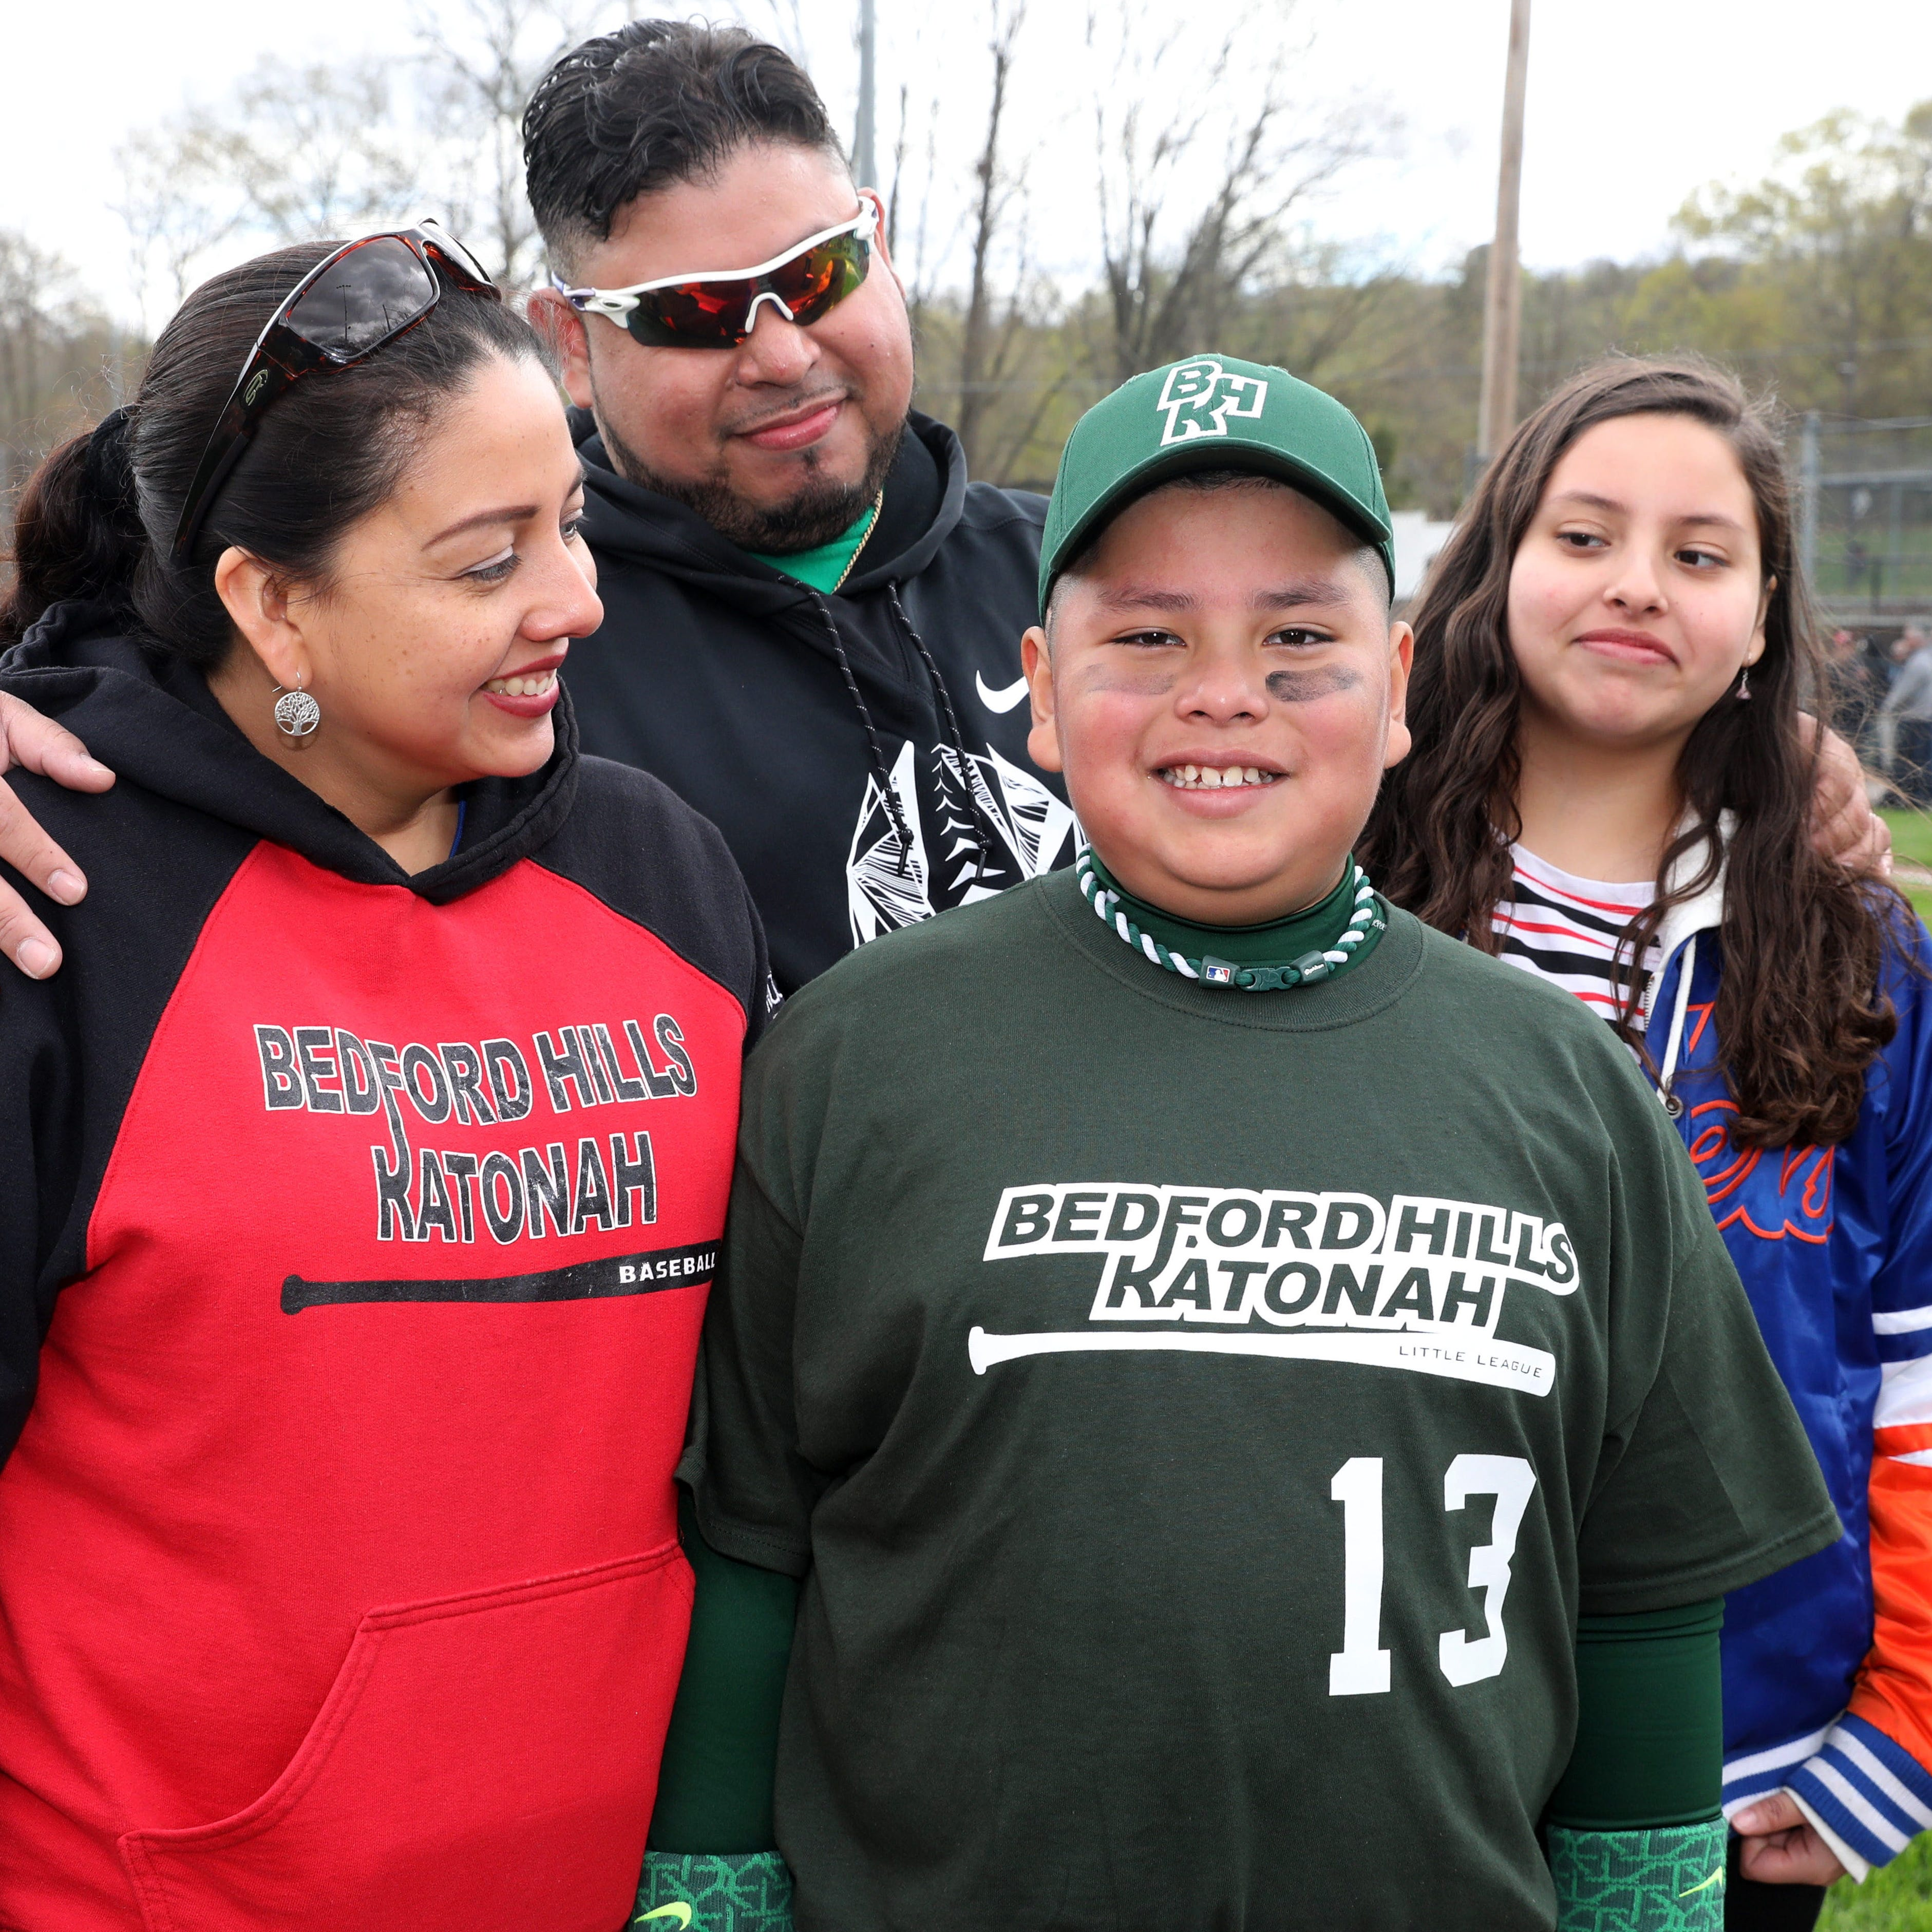 Rocky returns: Bedford boy, 10, returns to Little League after suffering stroke